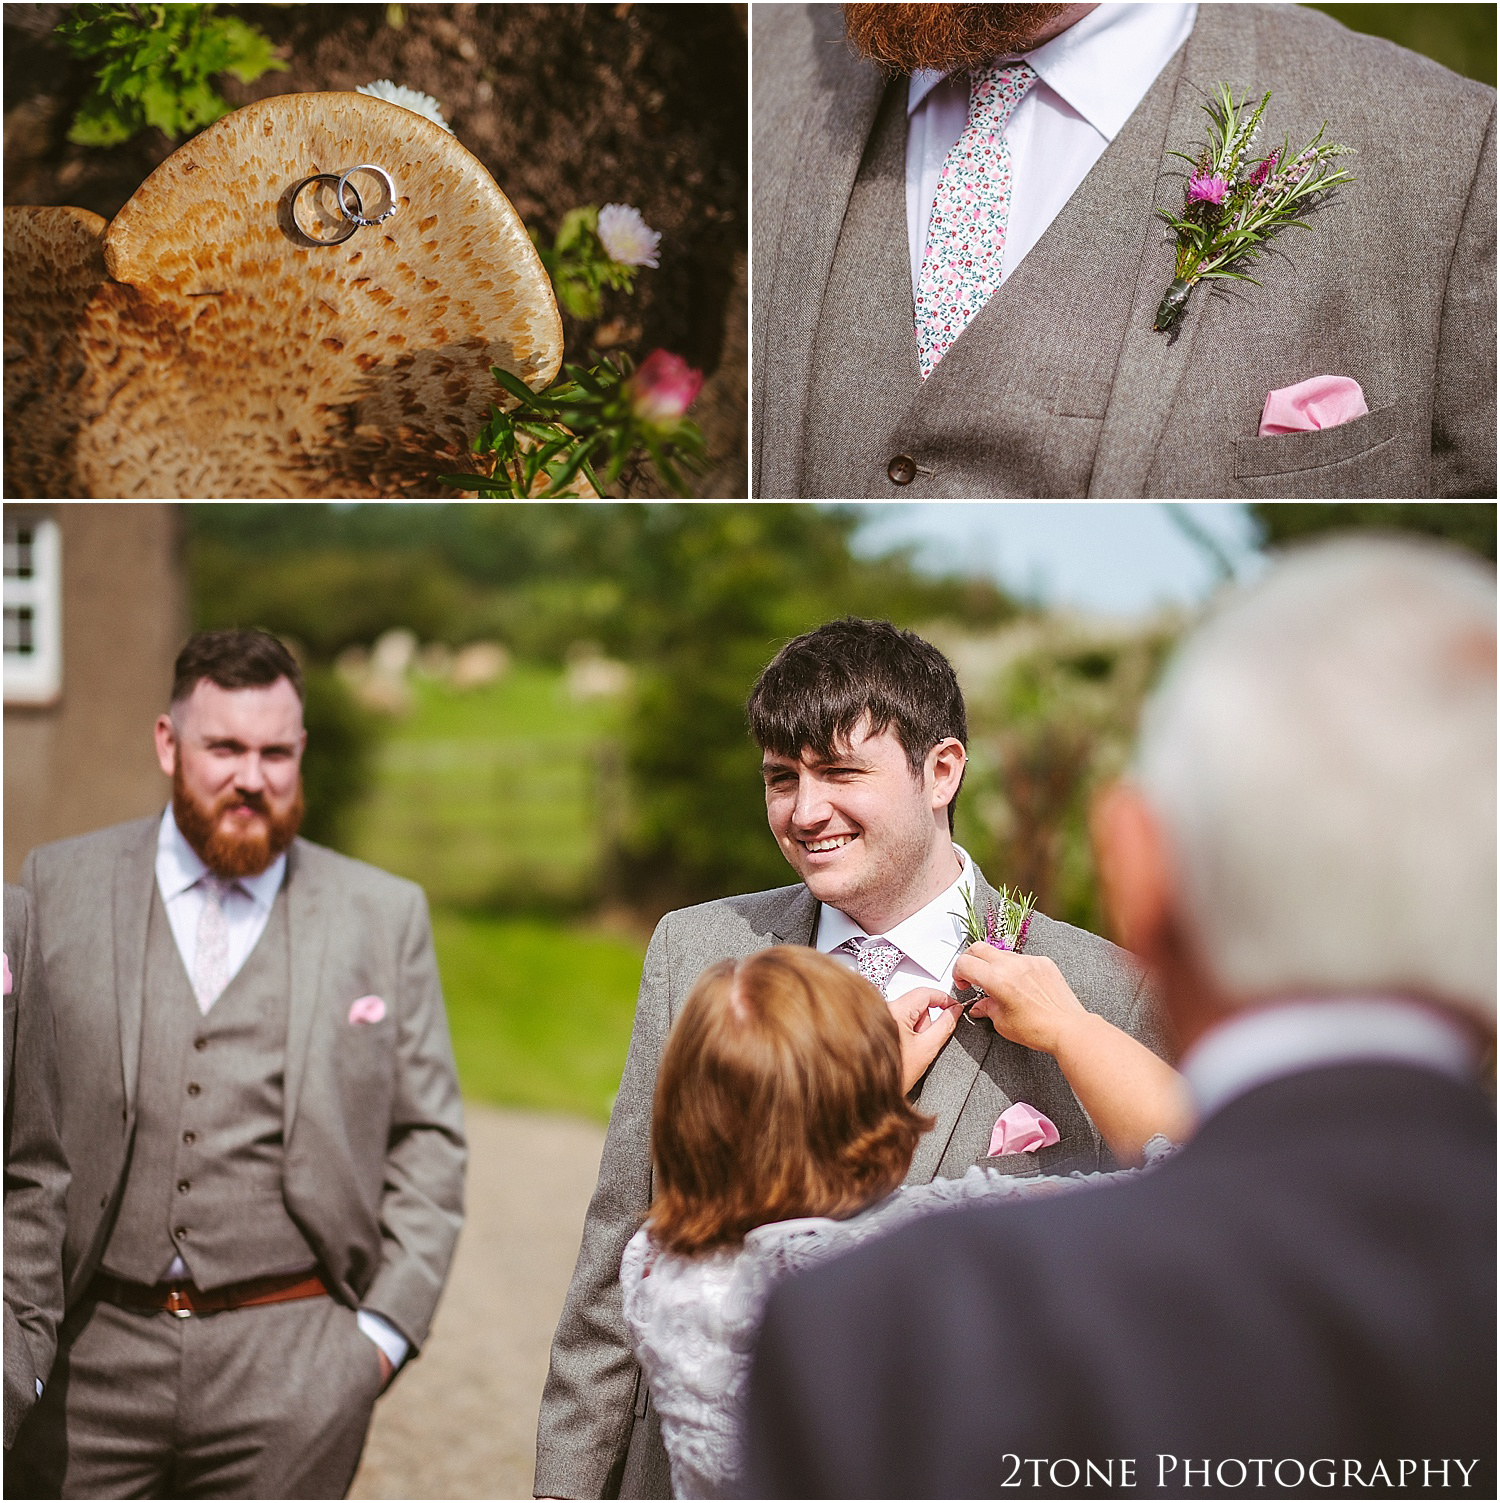 Doxford barns wedding photographer 015.jpg